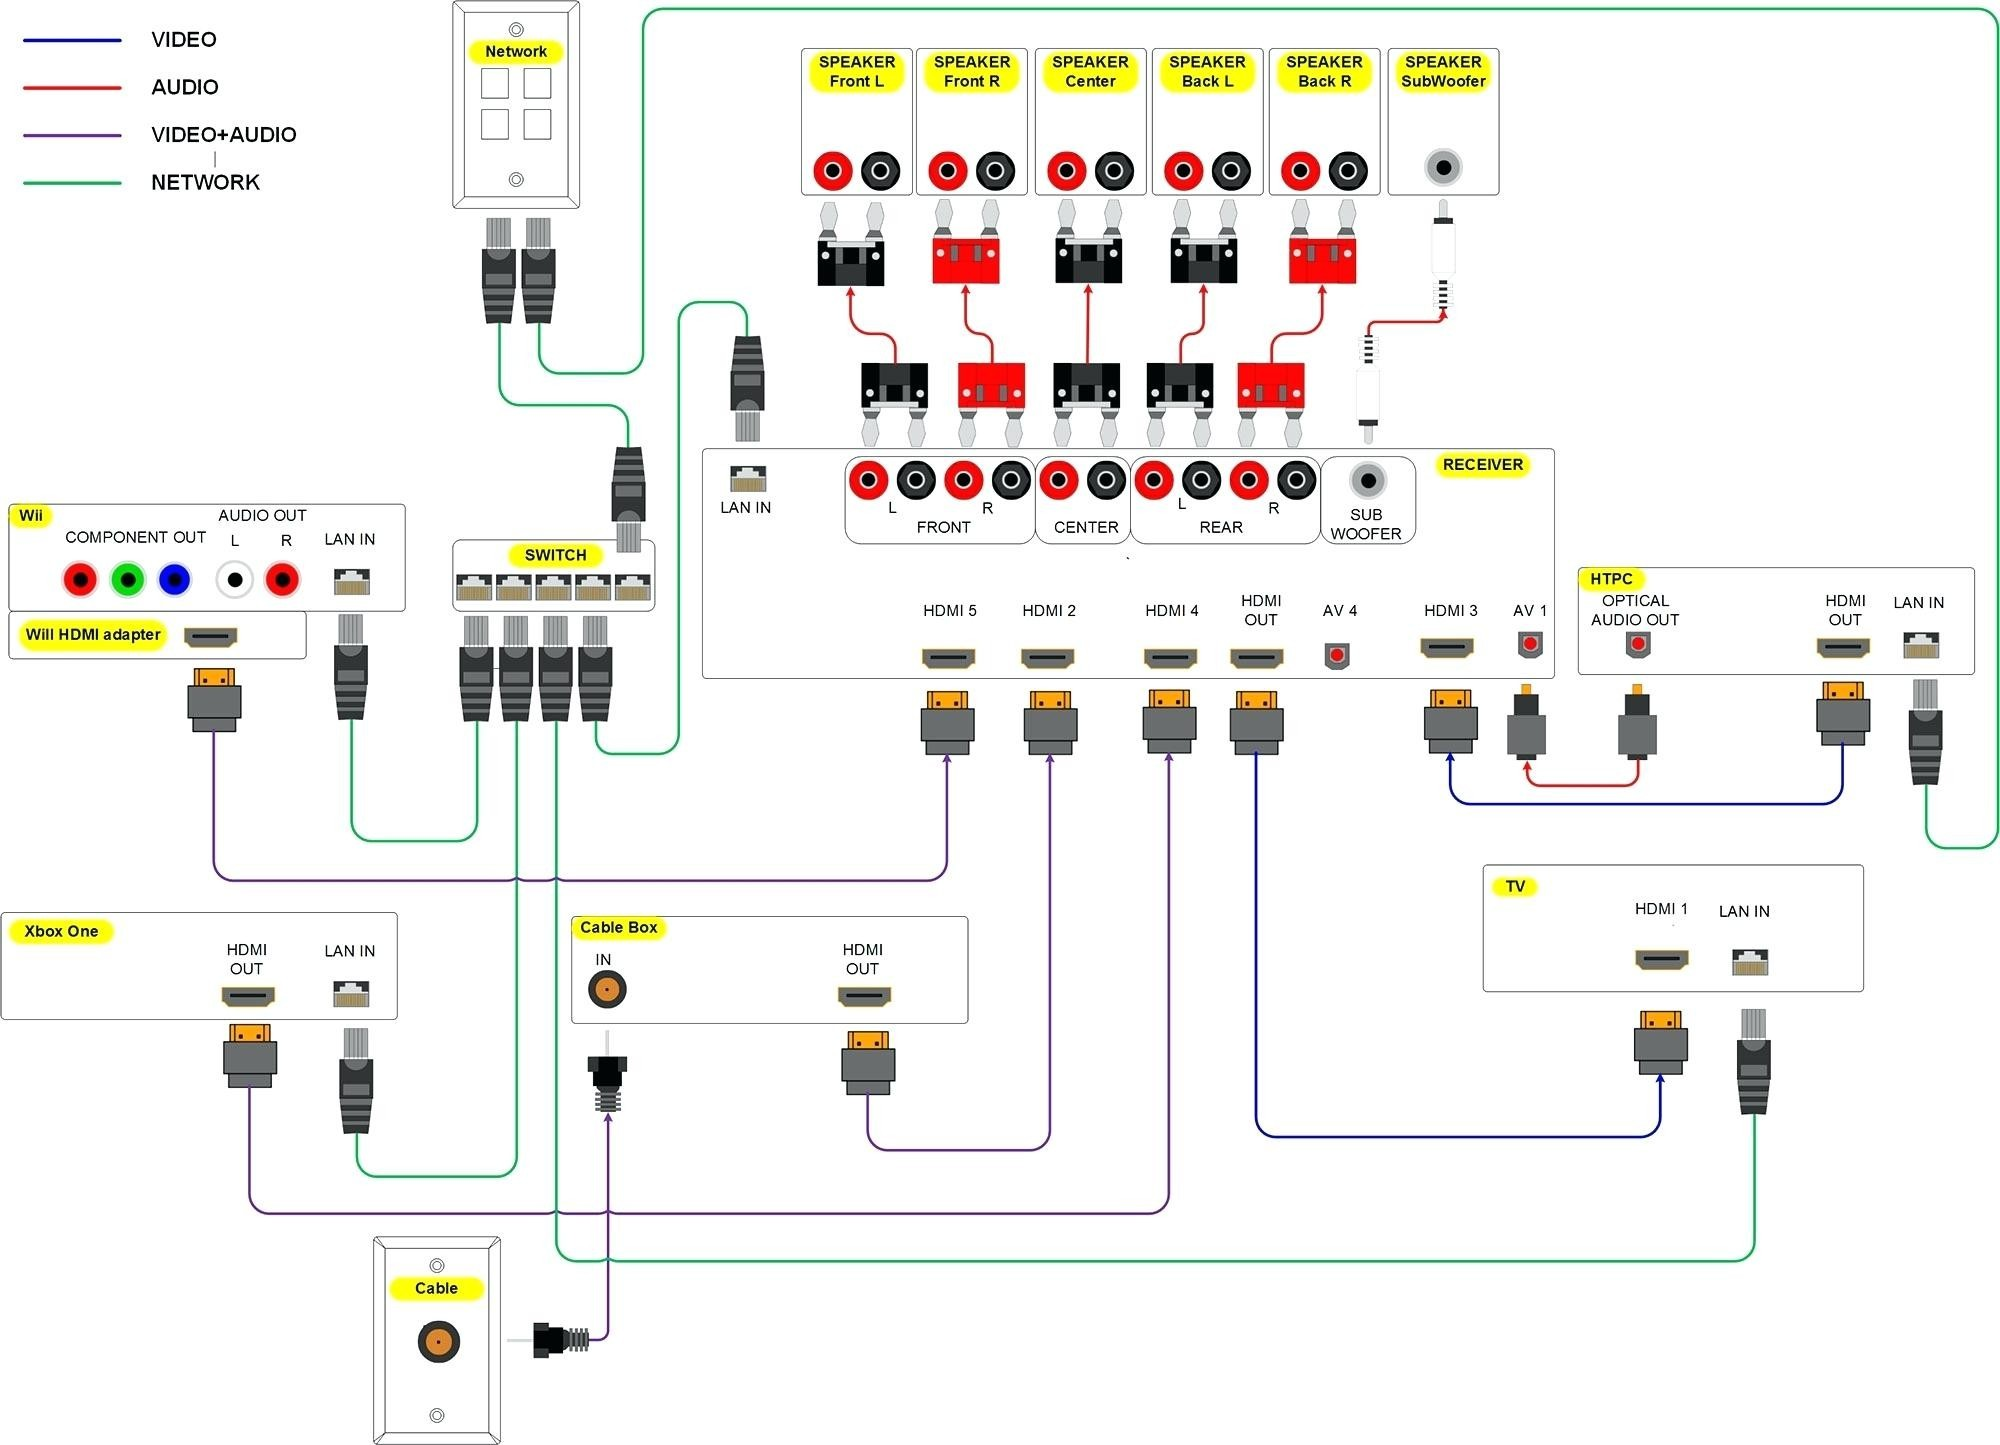 Volume control wiring diagram wiring solutions wiring diagram on home diagrams with speaker volume control asfbconference2016 Images